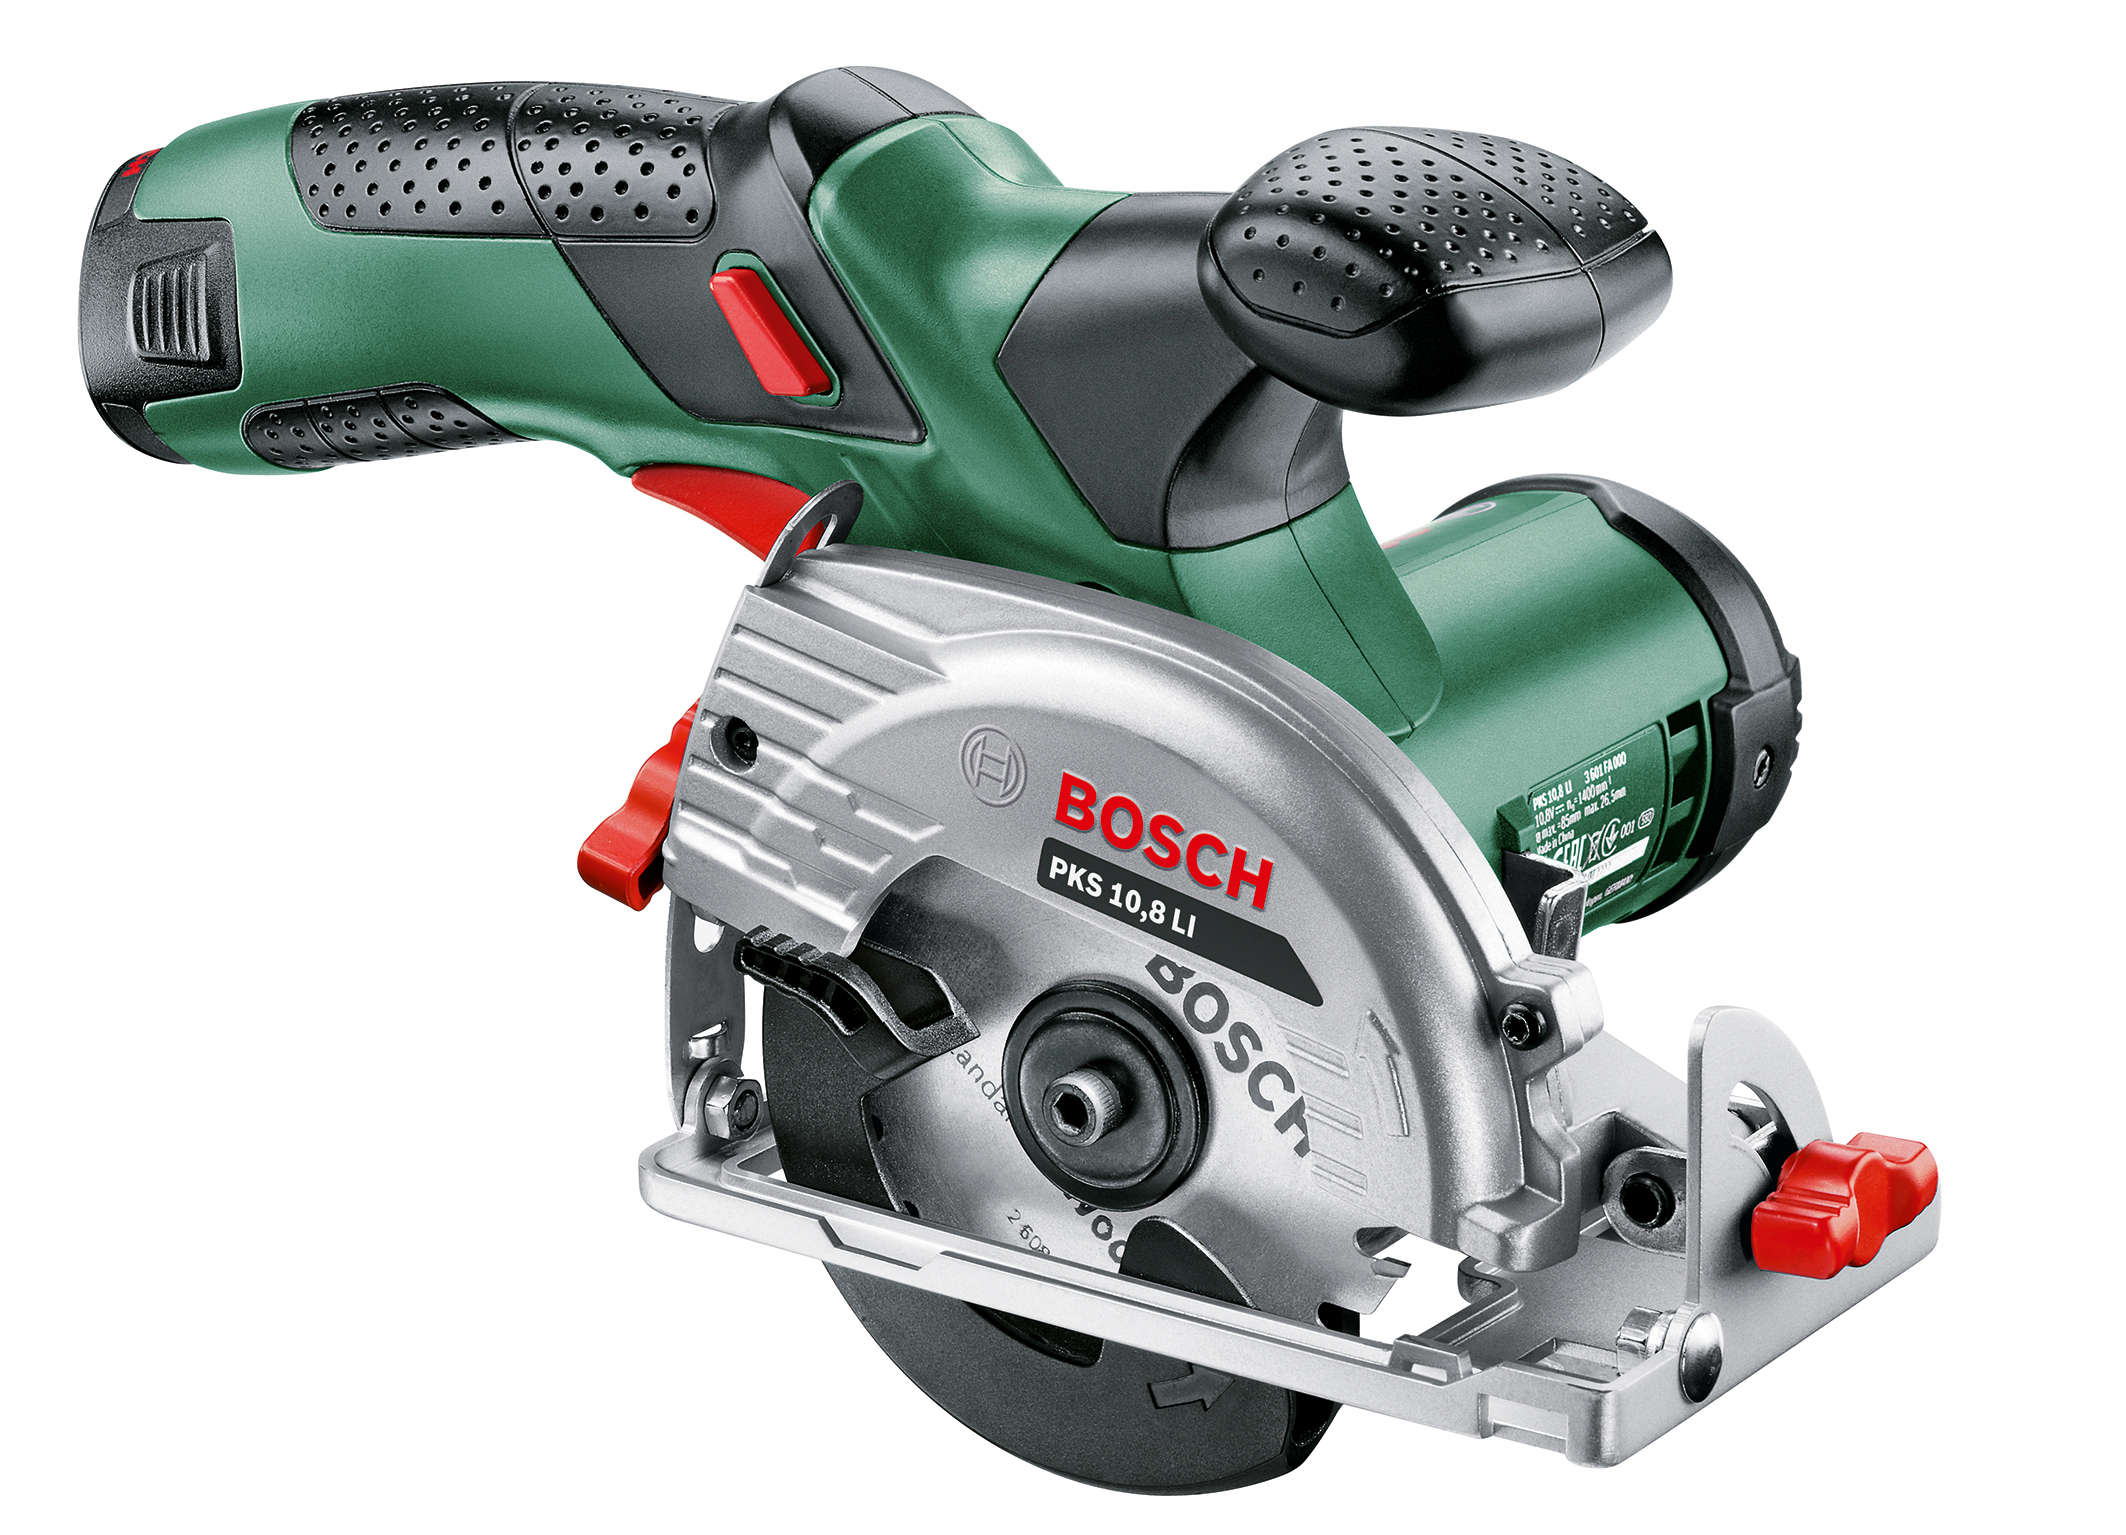 the pks 10 8 li mini hand held circular saw from bosch bosch media service. Black Bedroom Furniture Sets. Home Design Ideas